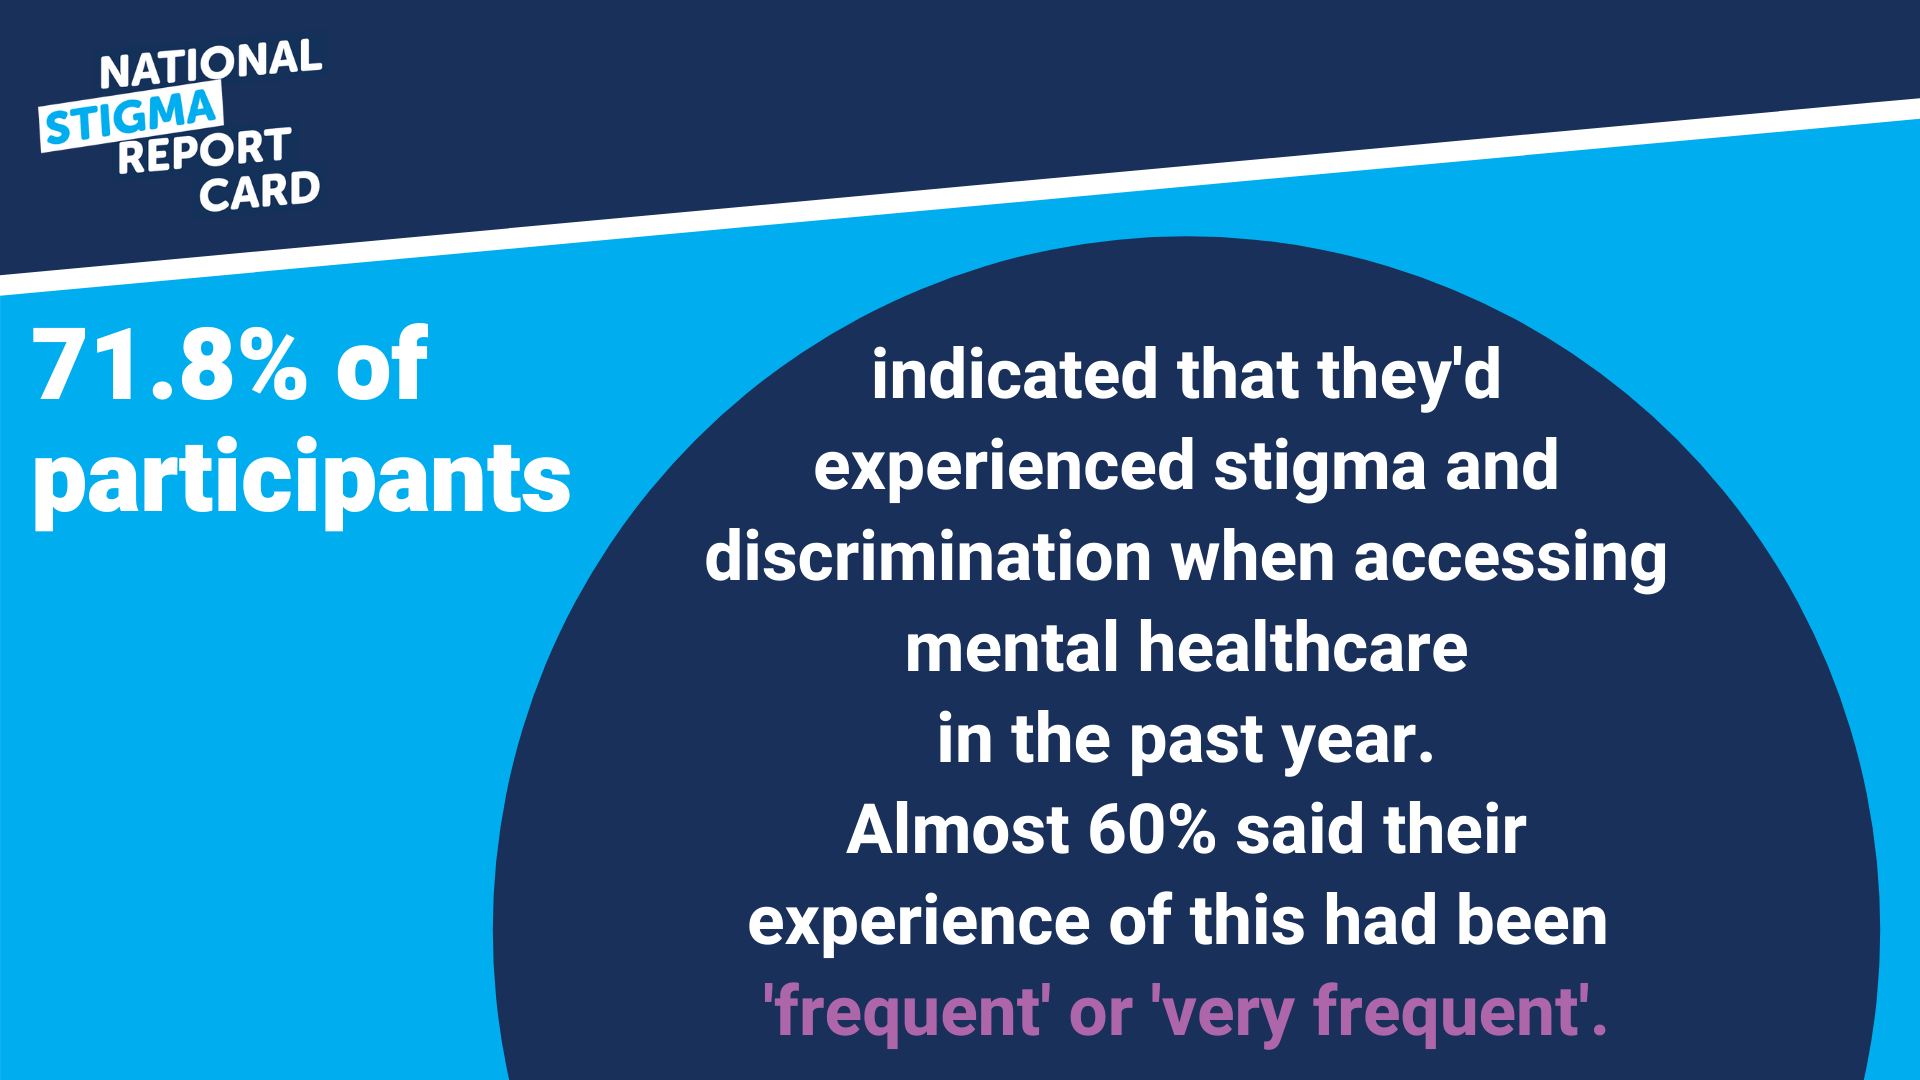 71.8% of participants indicated they'd experienced stigma when accessing mental healthcare in the past year.